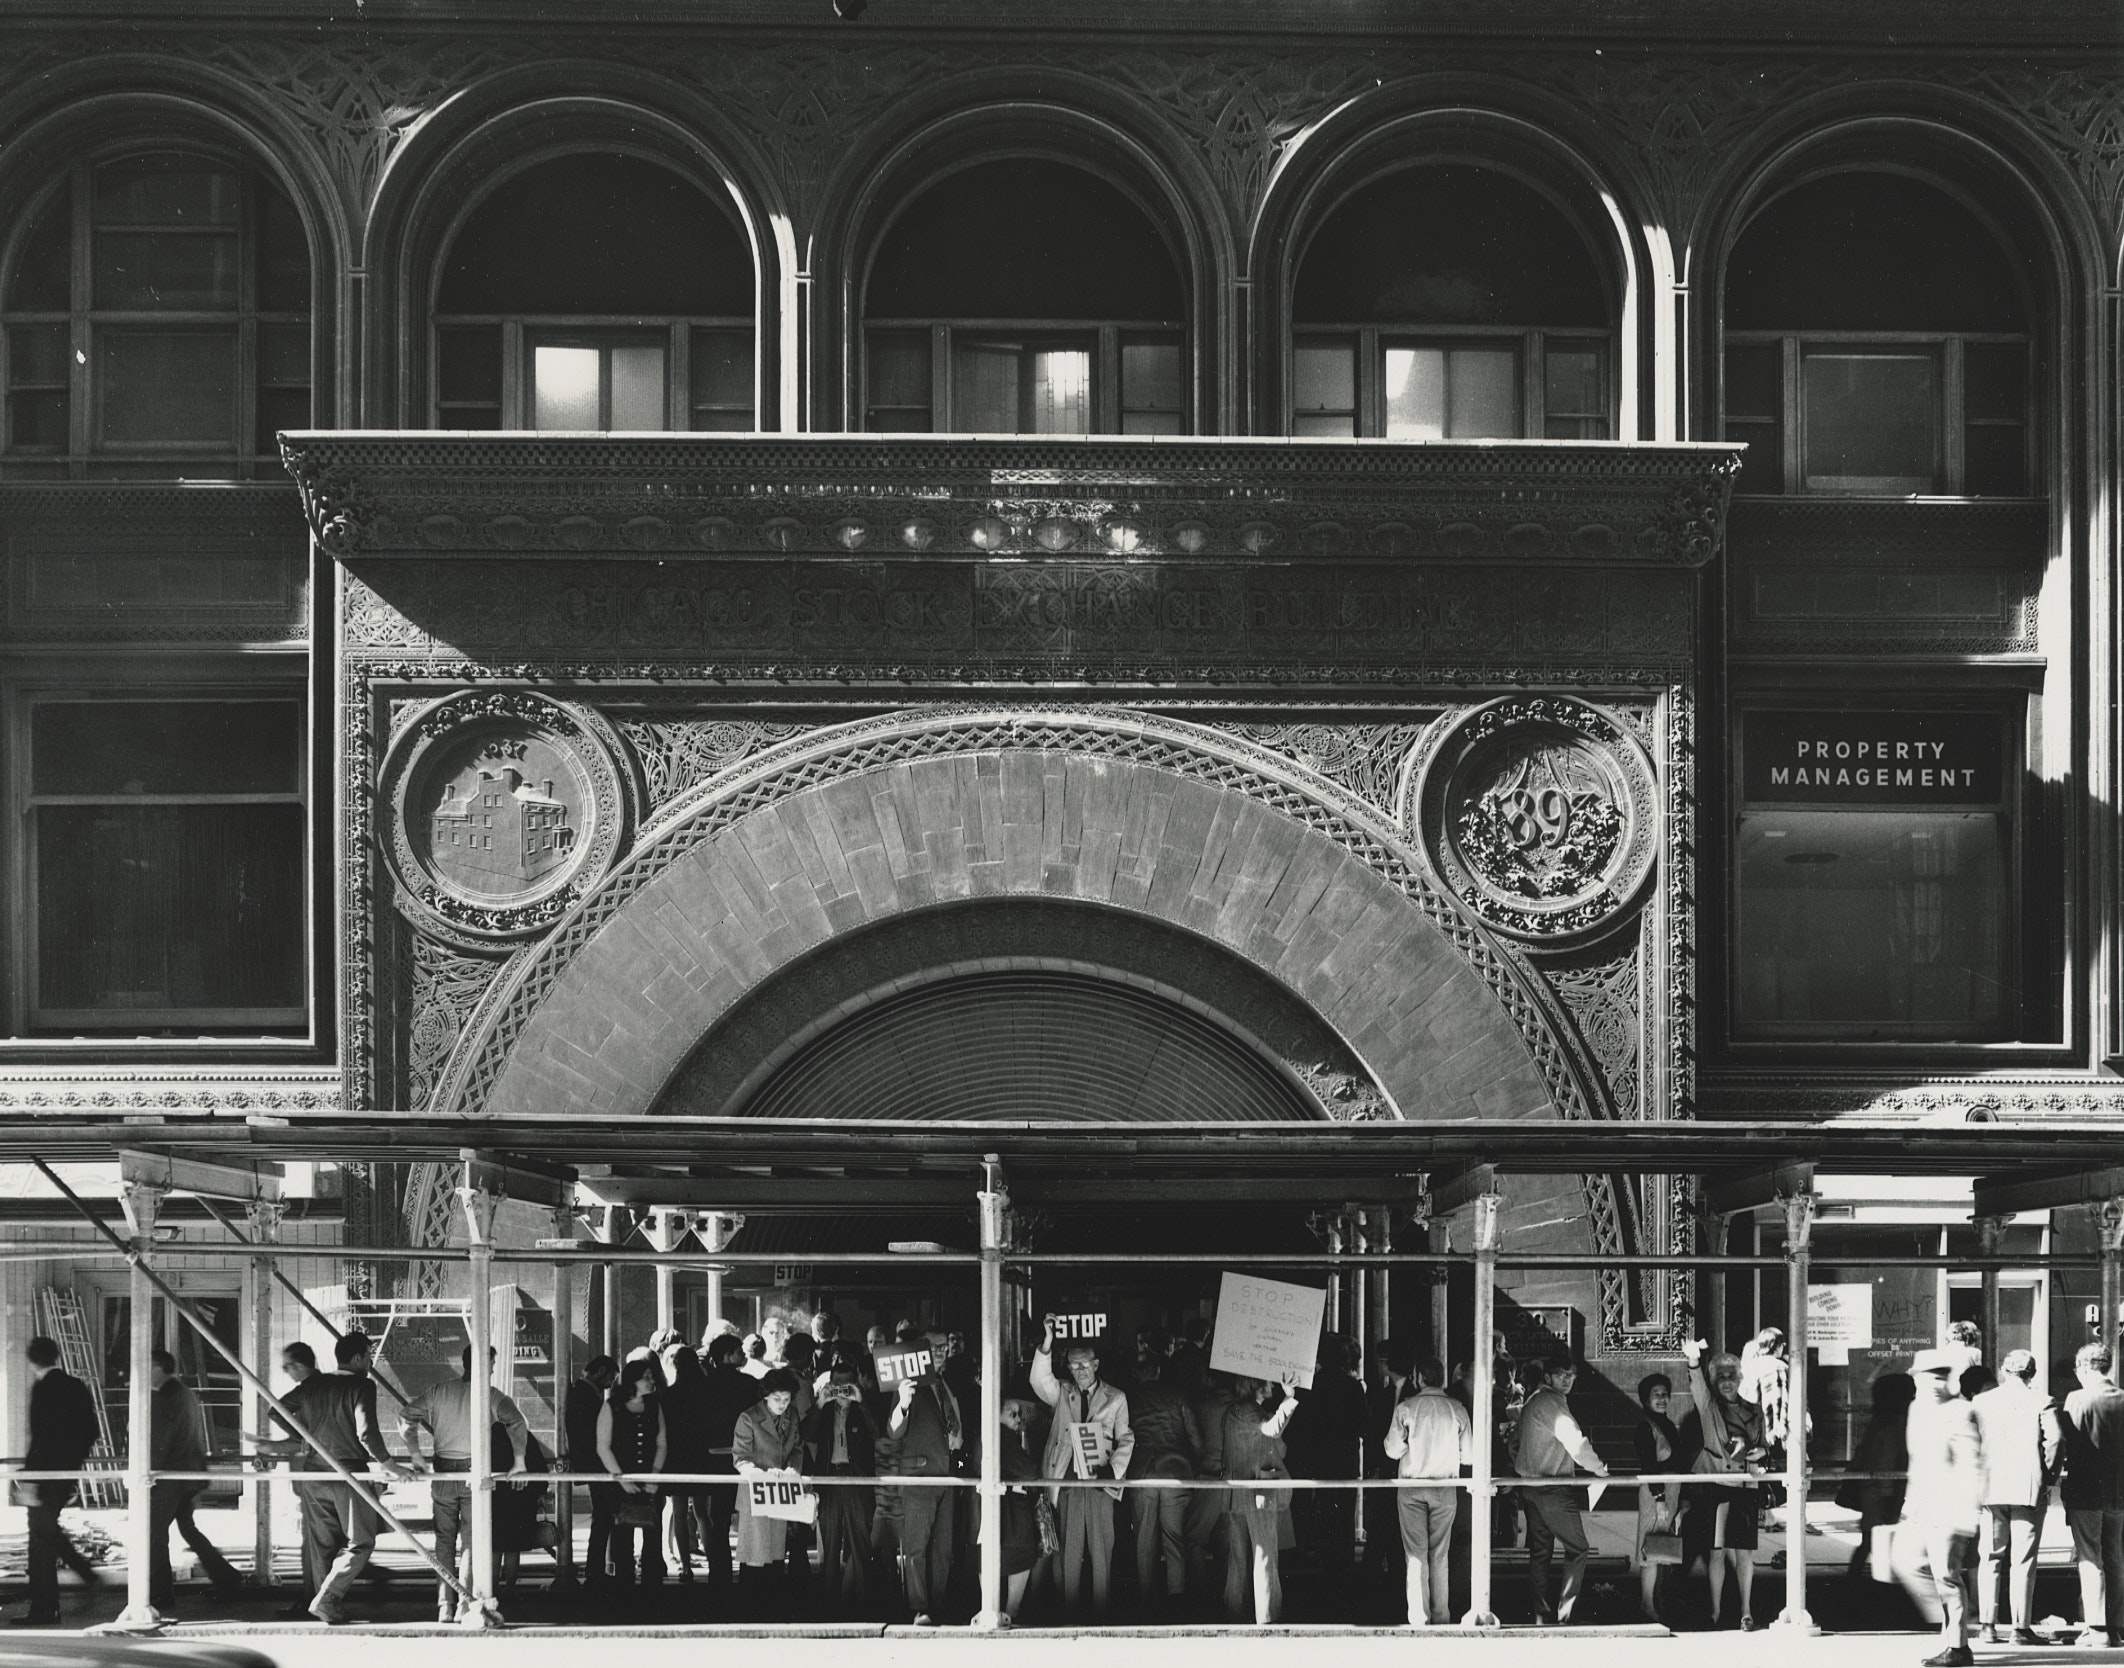 Archival image of the Chicago Stock Exchange Building, about 1971